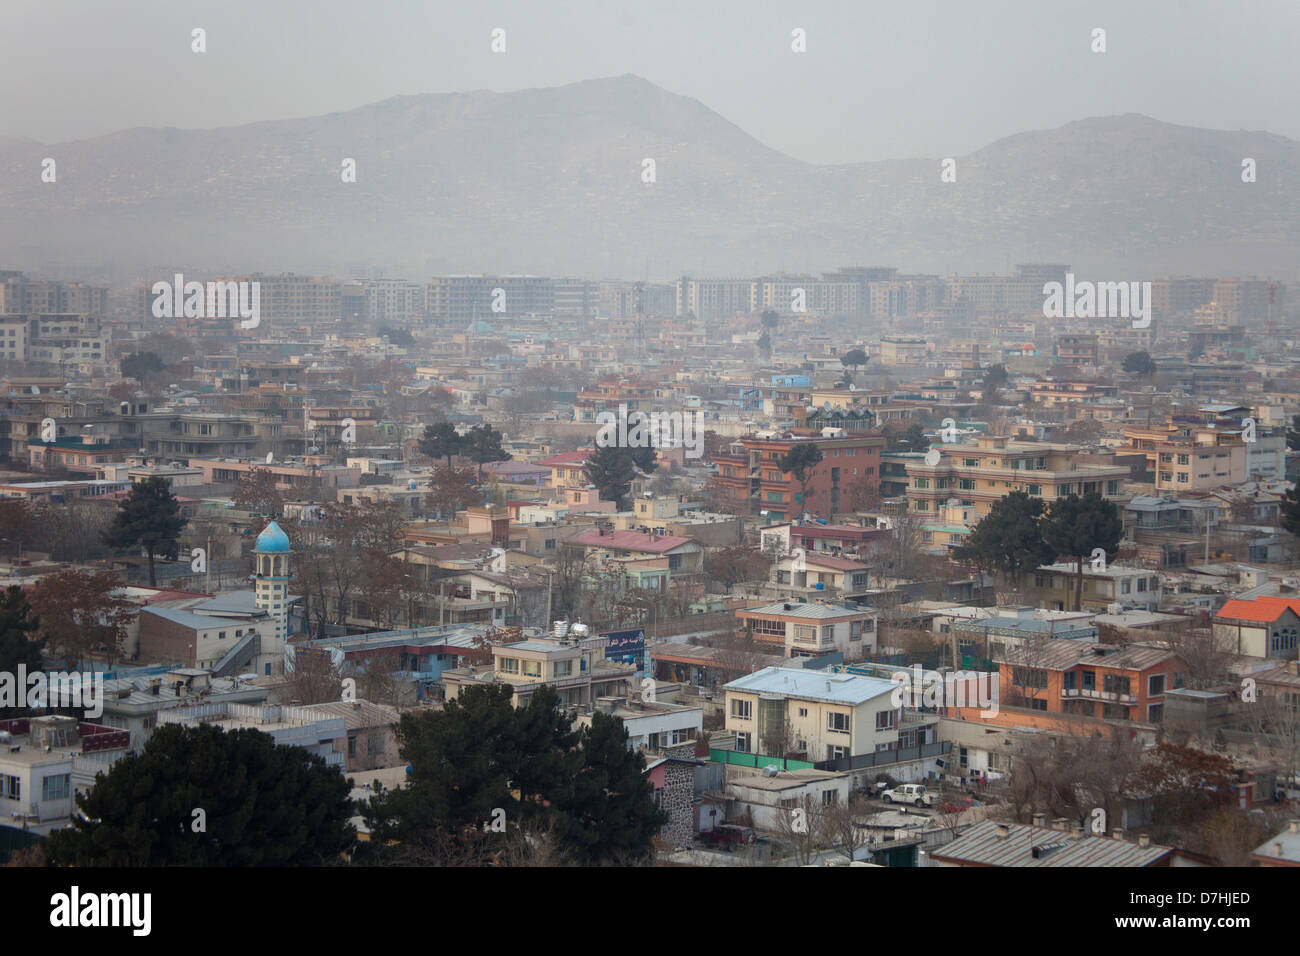 view on the city of Kabul, Afghanistan. - Stock Image